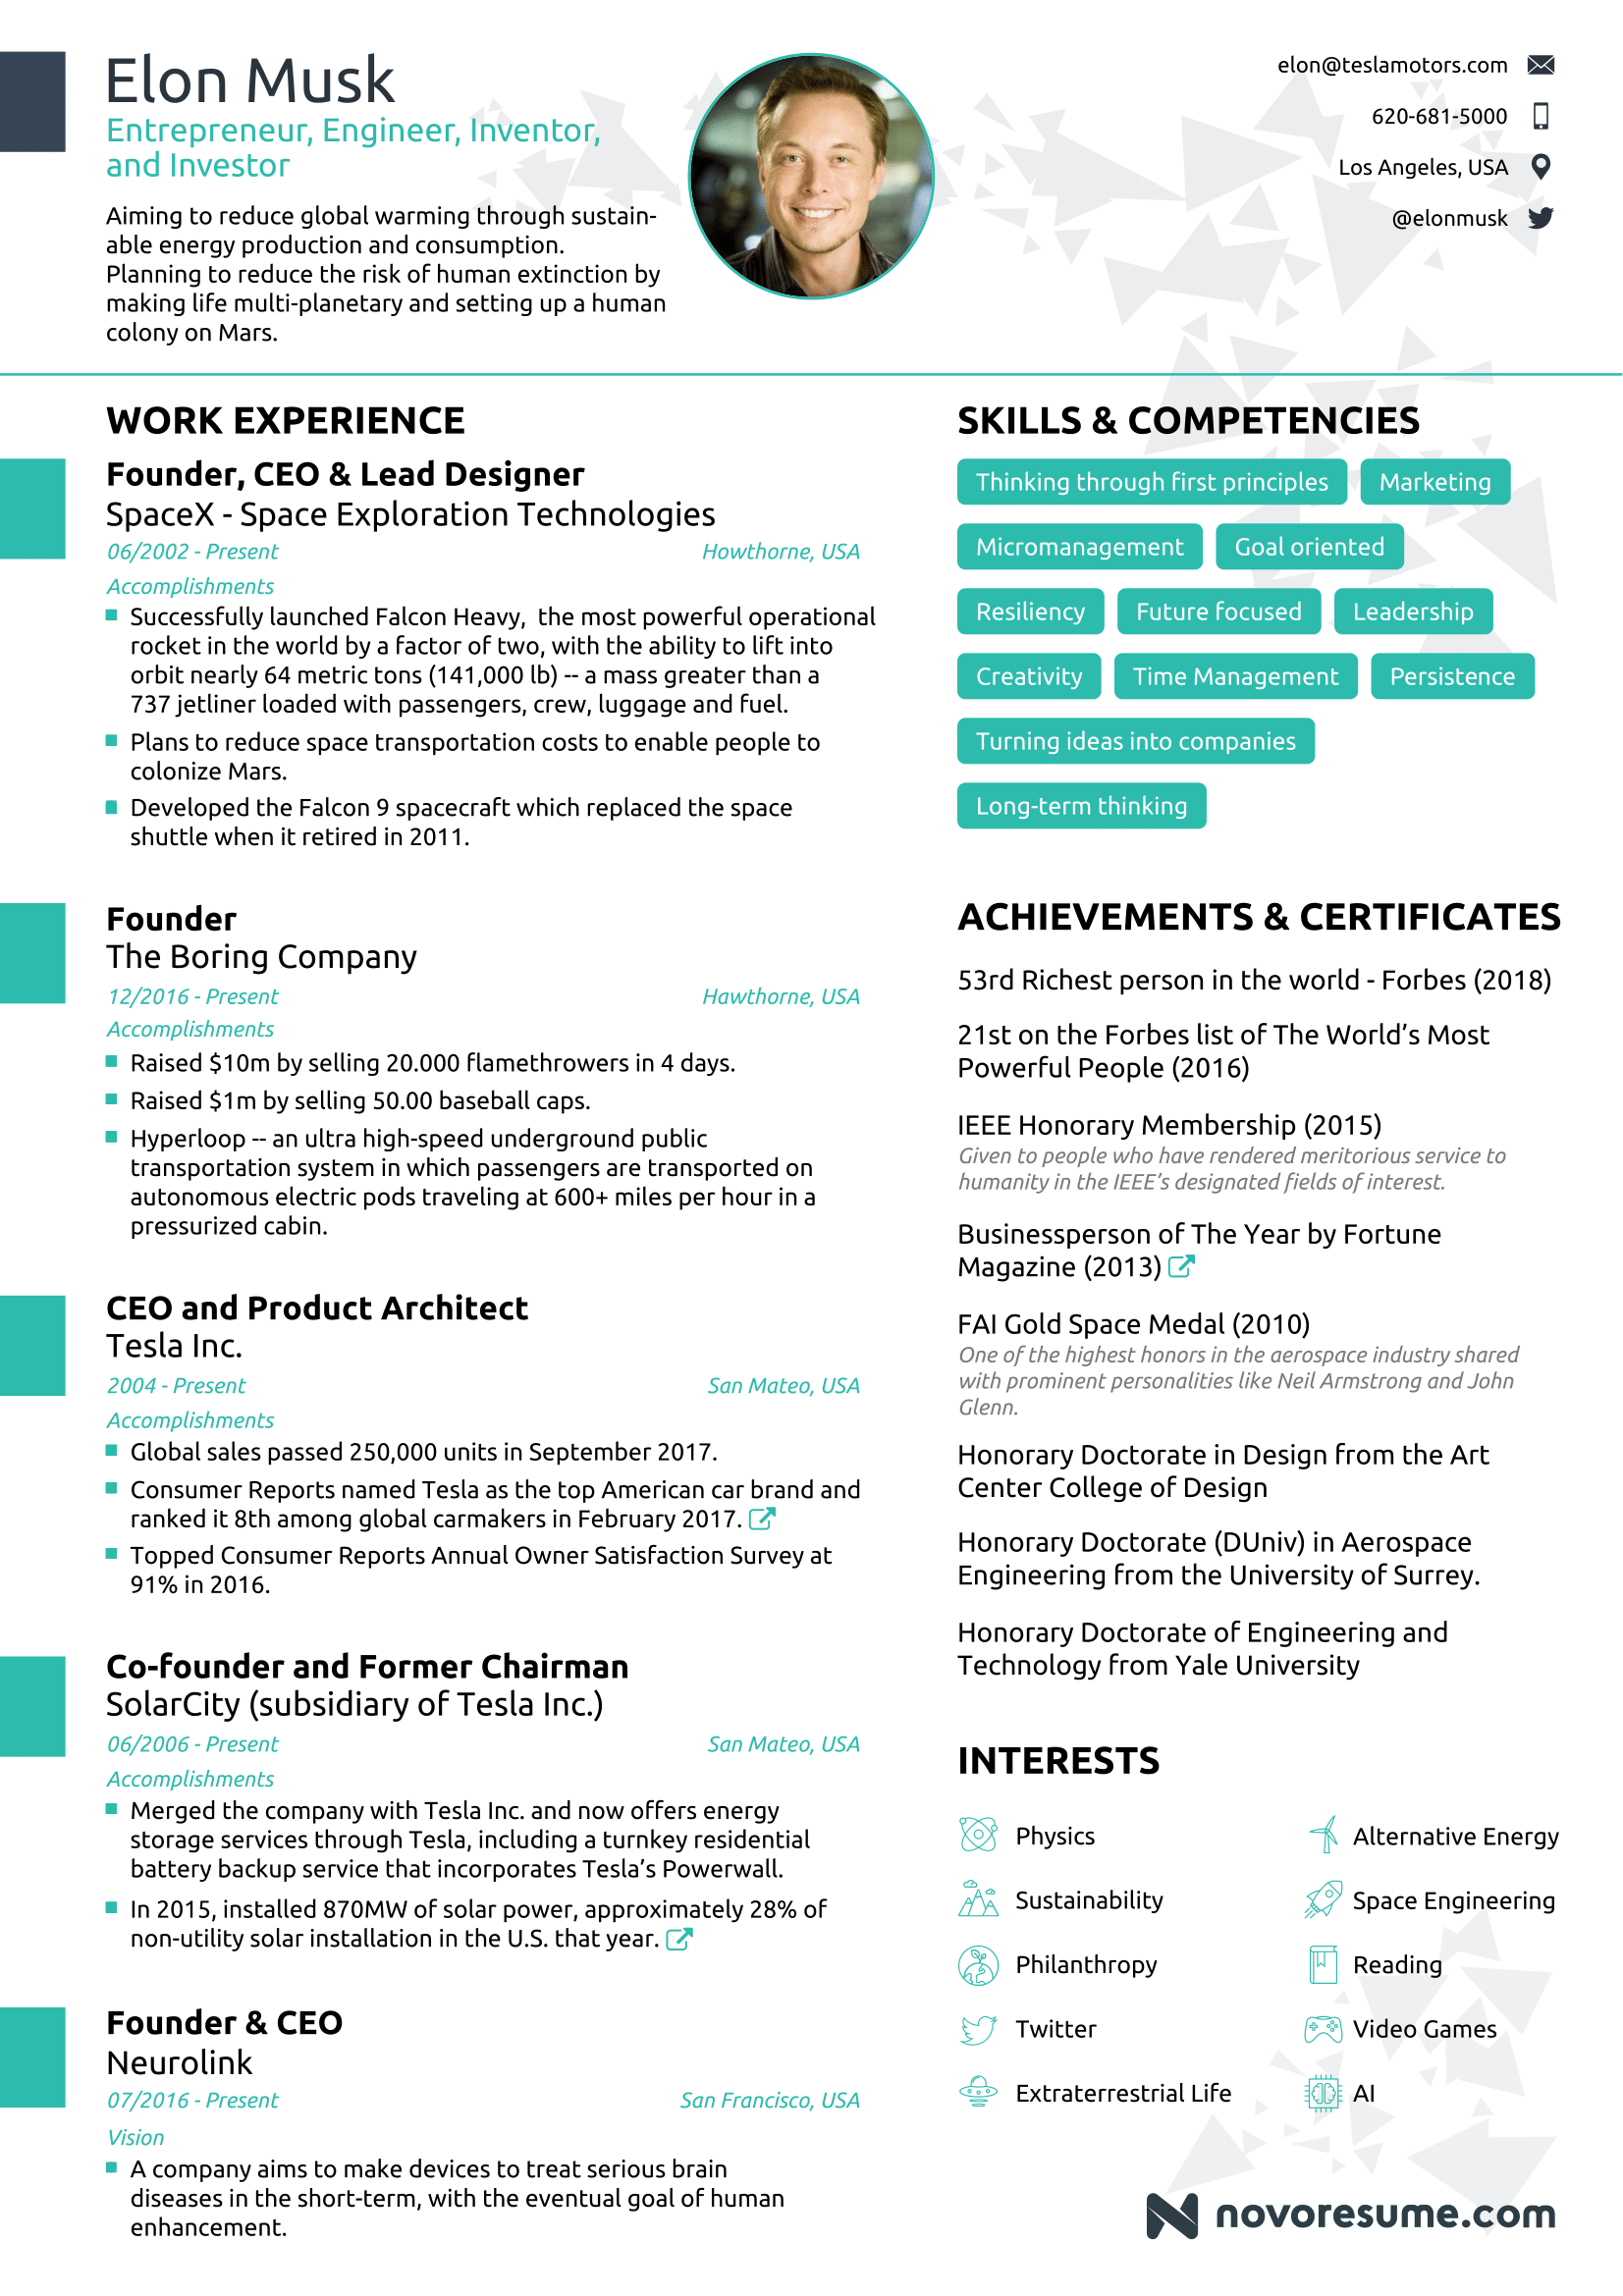 The Résumé of Elon Musk - By Novorésumé